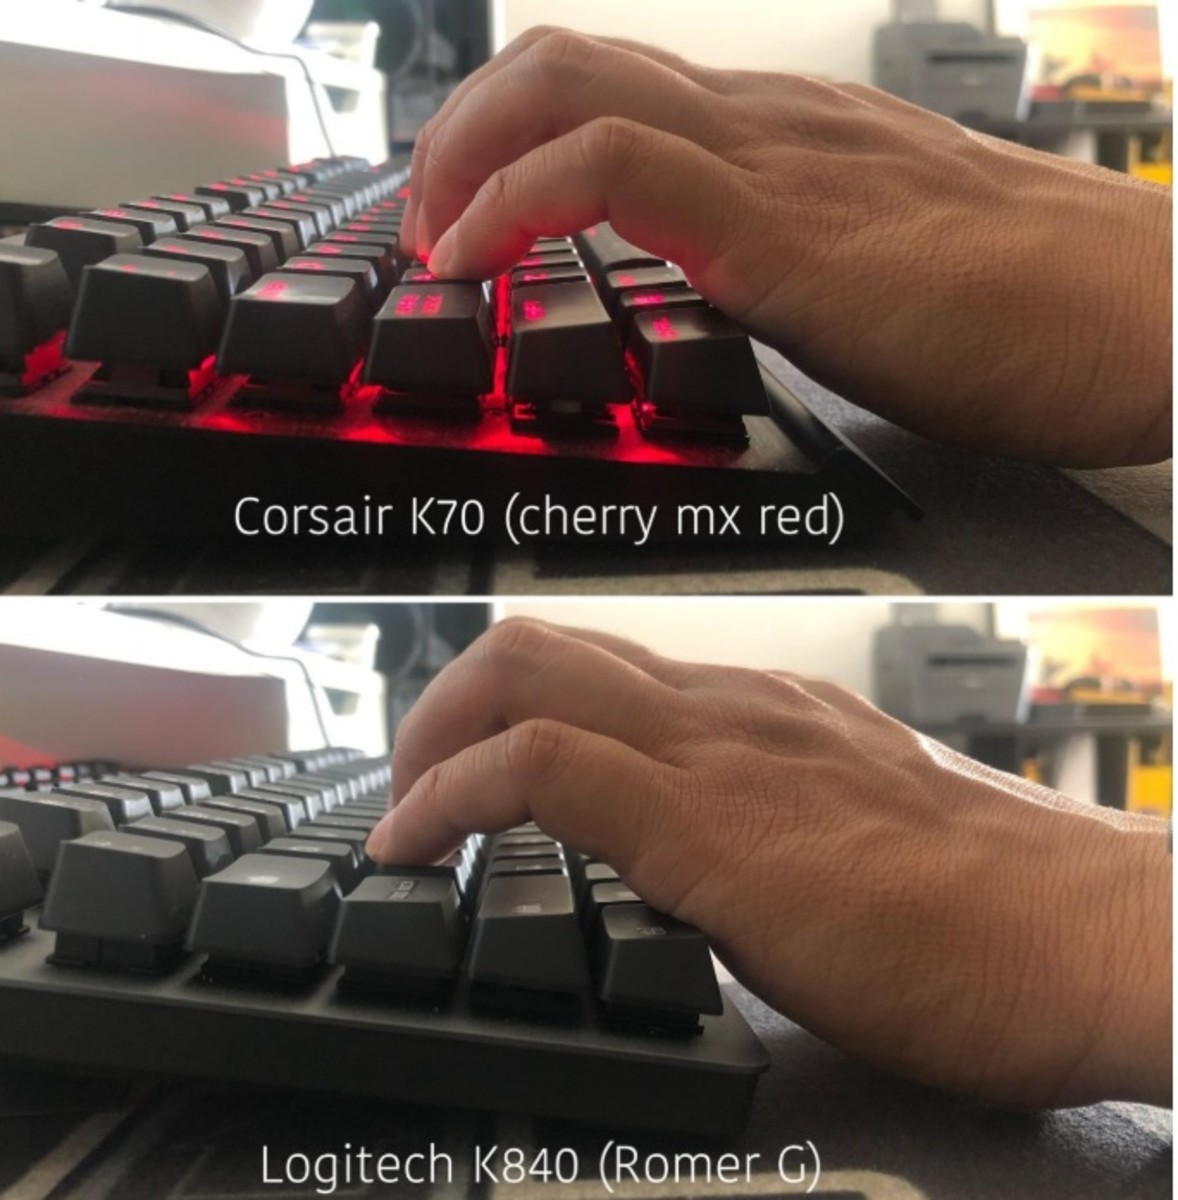 Here's a very useful pic comparing the stance of the keys on the Corsair K70 (listed below) and the Logitech K840.